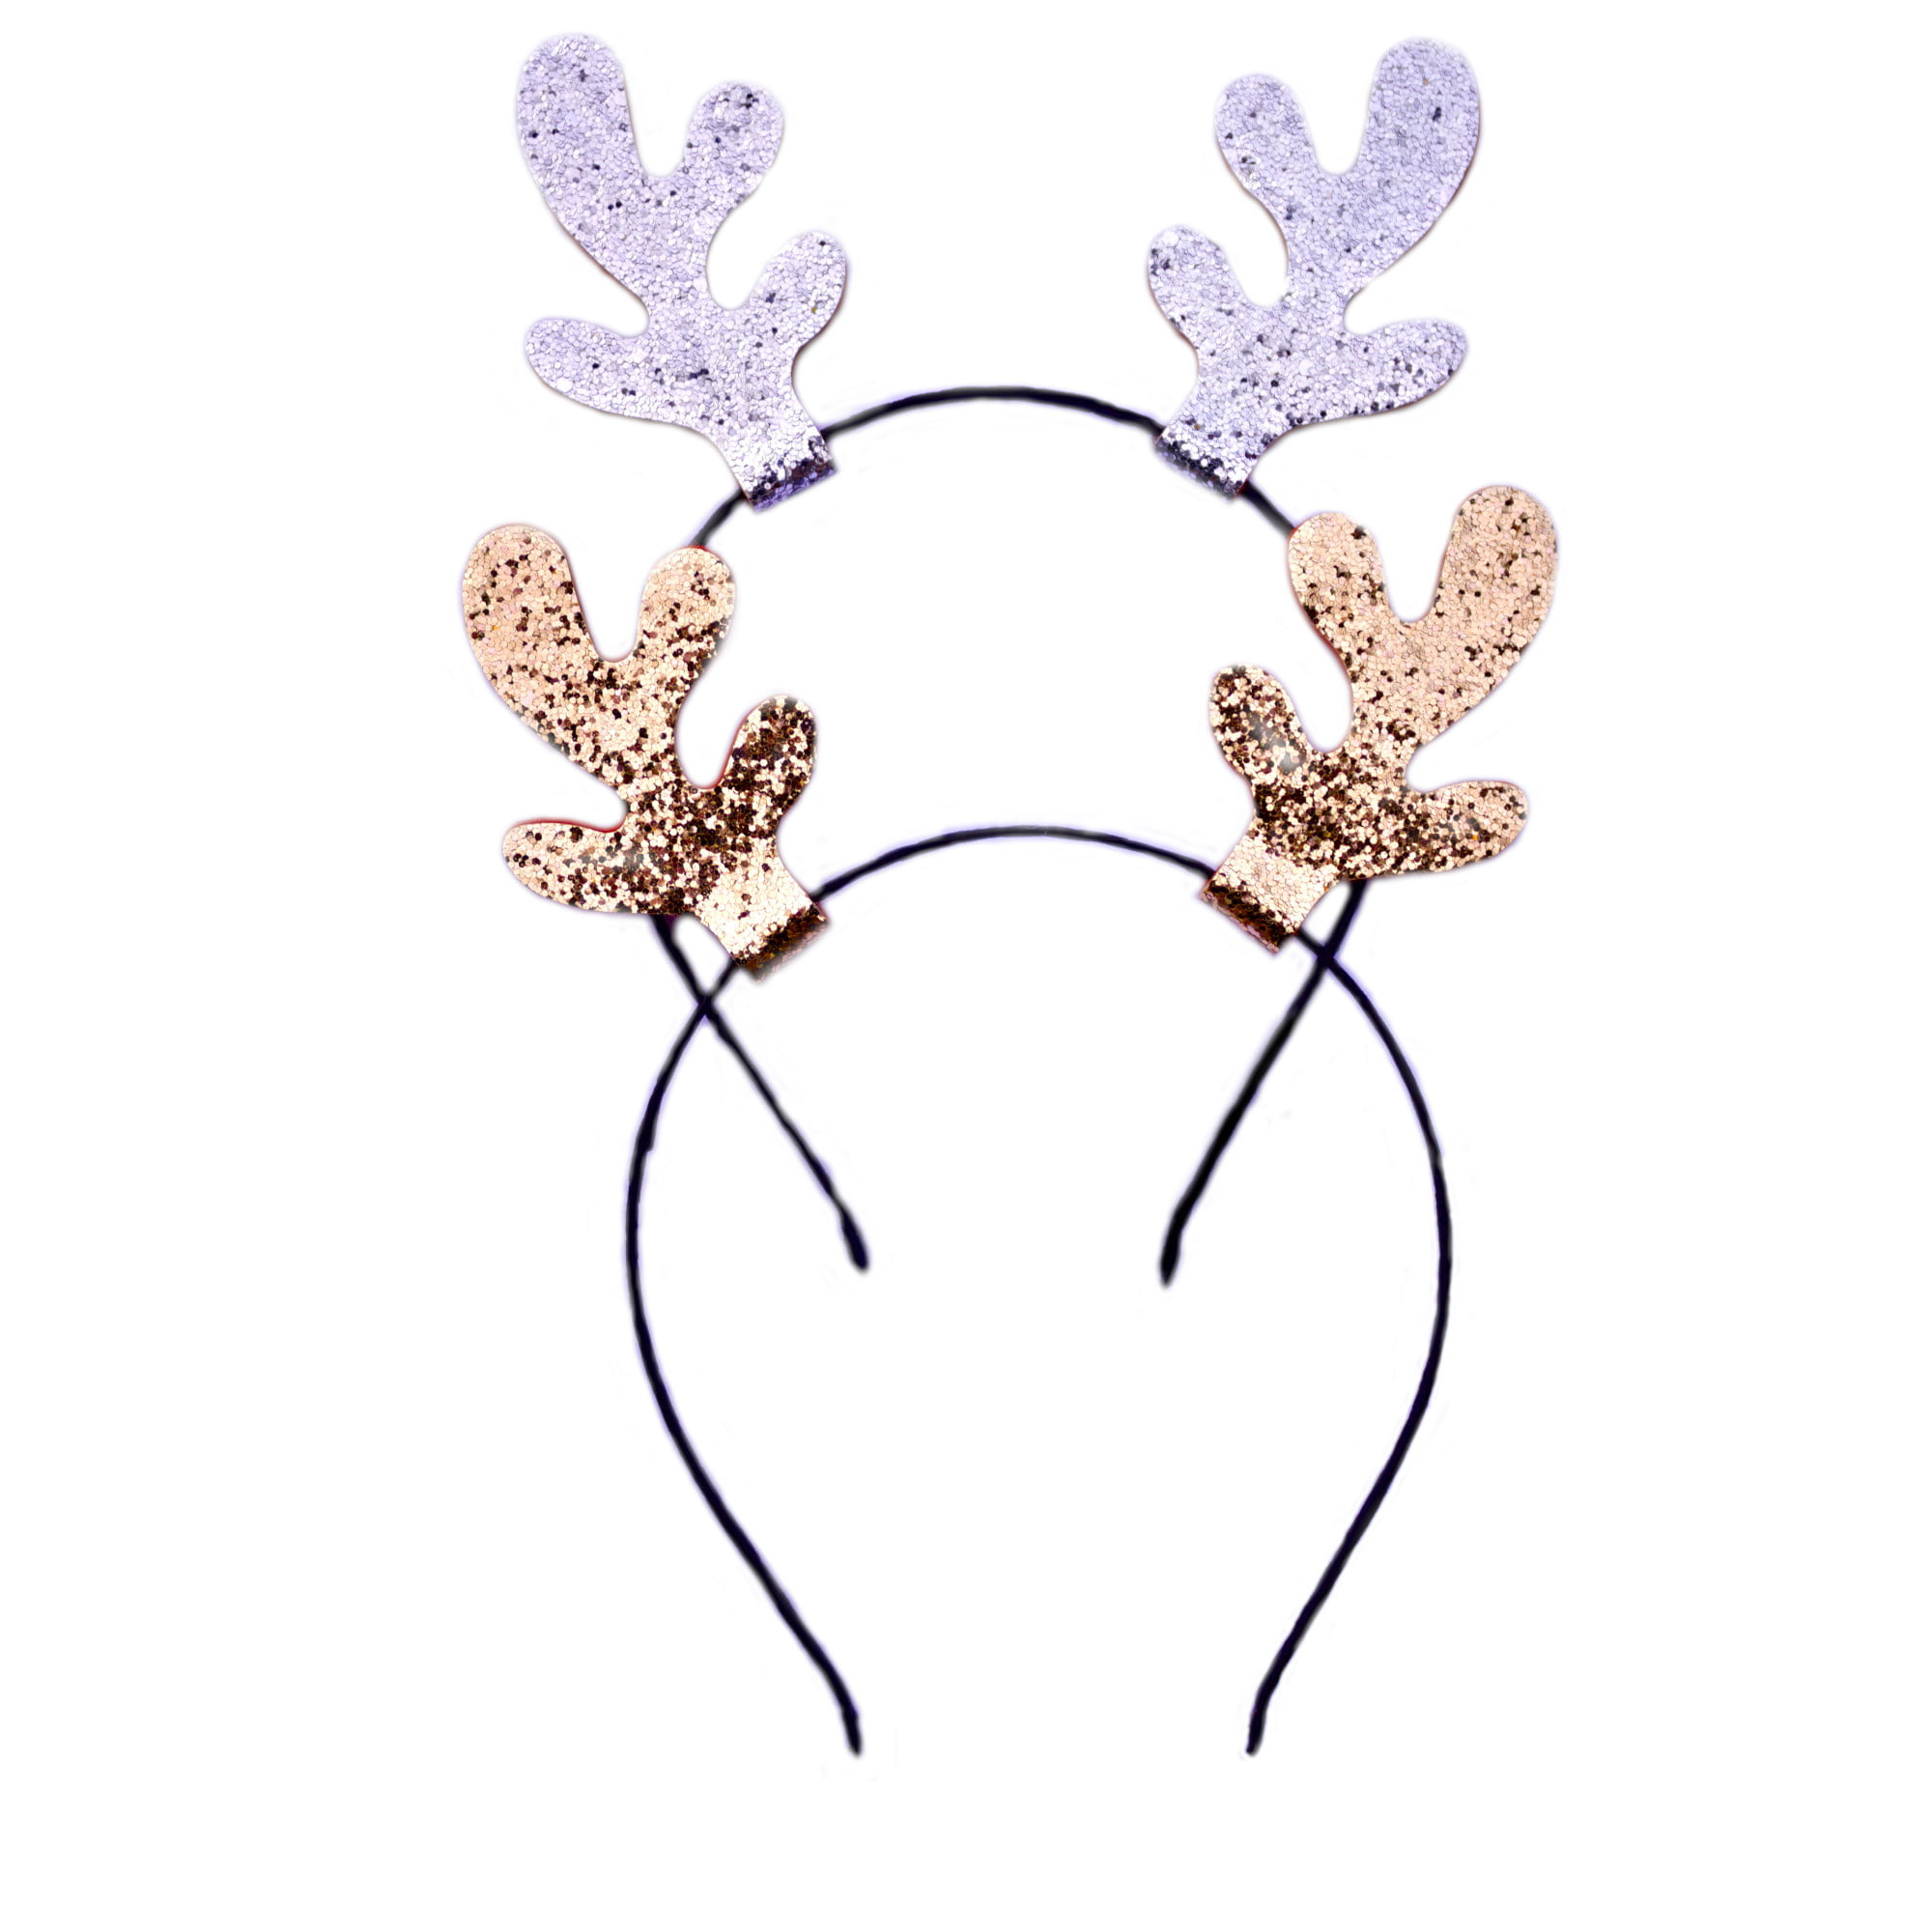 Pair of glitter antler headbands